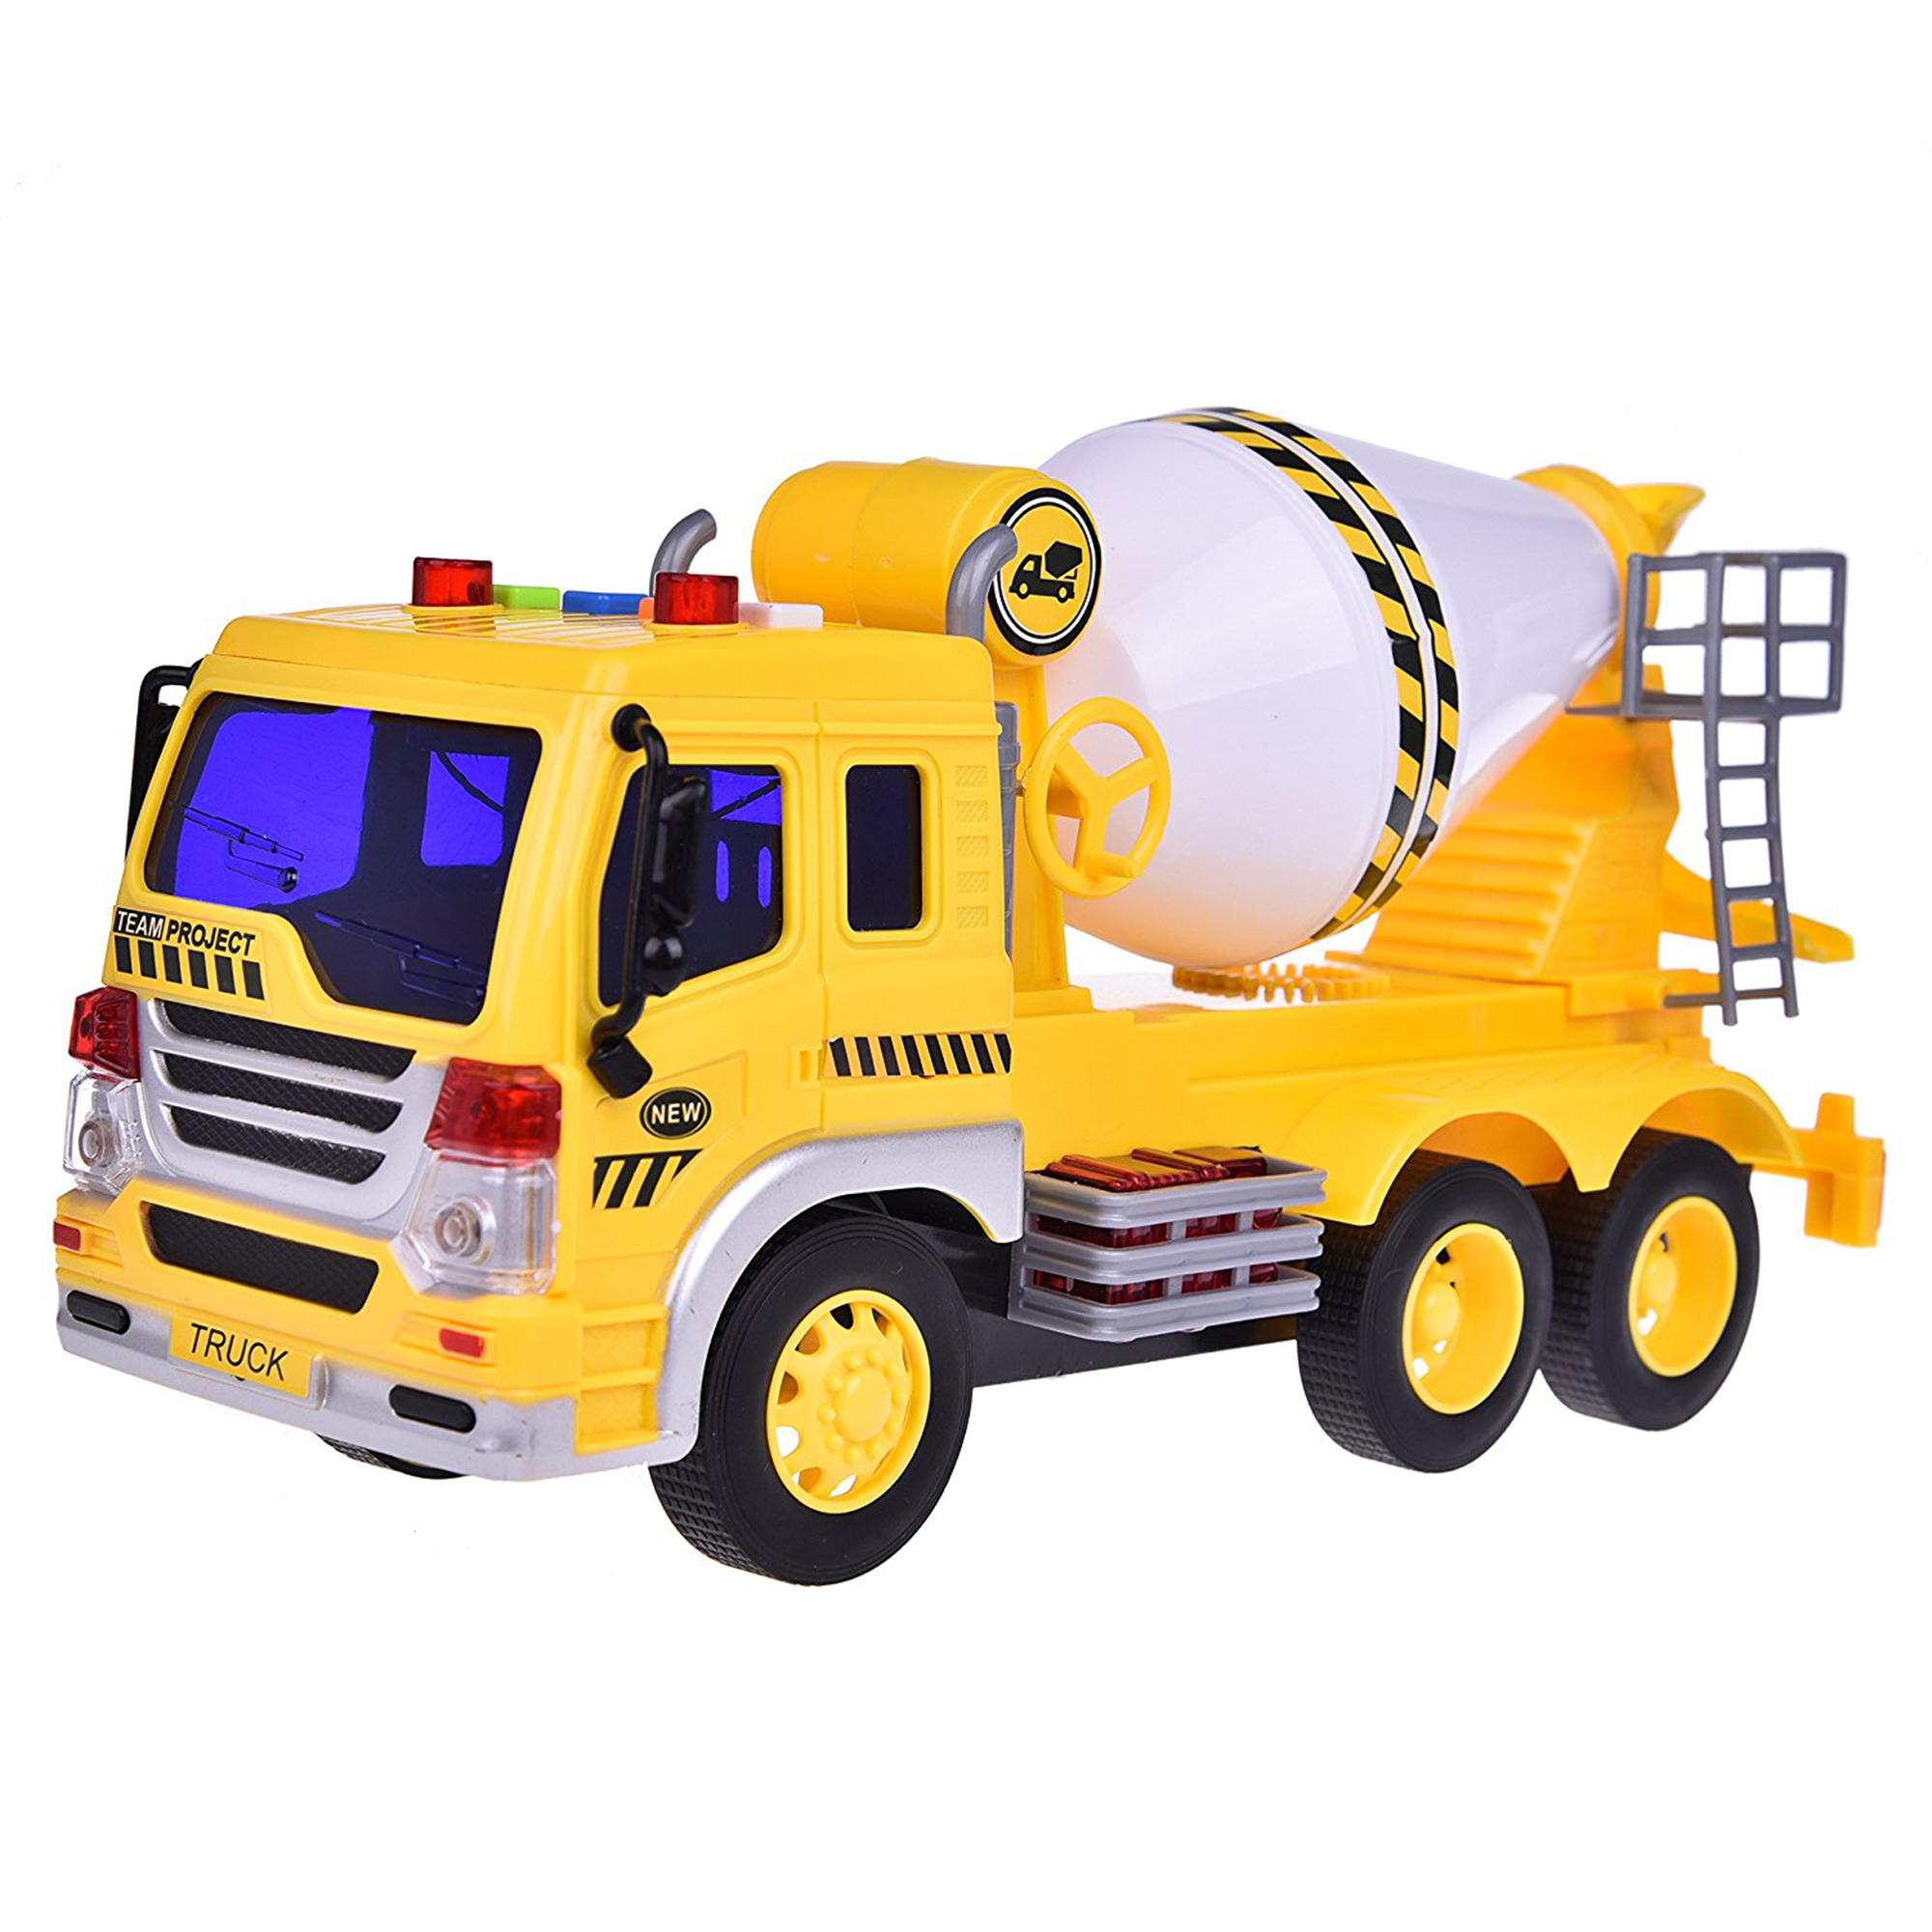 Cement Truck Car Toy for Boys Chrismas Gift Friction Powered Yellow and White Builder Machine Car 1:16 With Light and Music Six Wheels with Batteries F-36